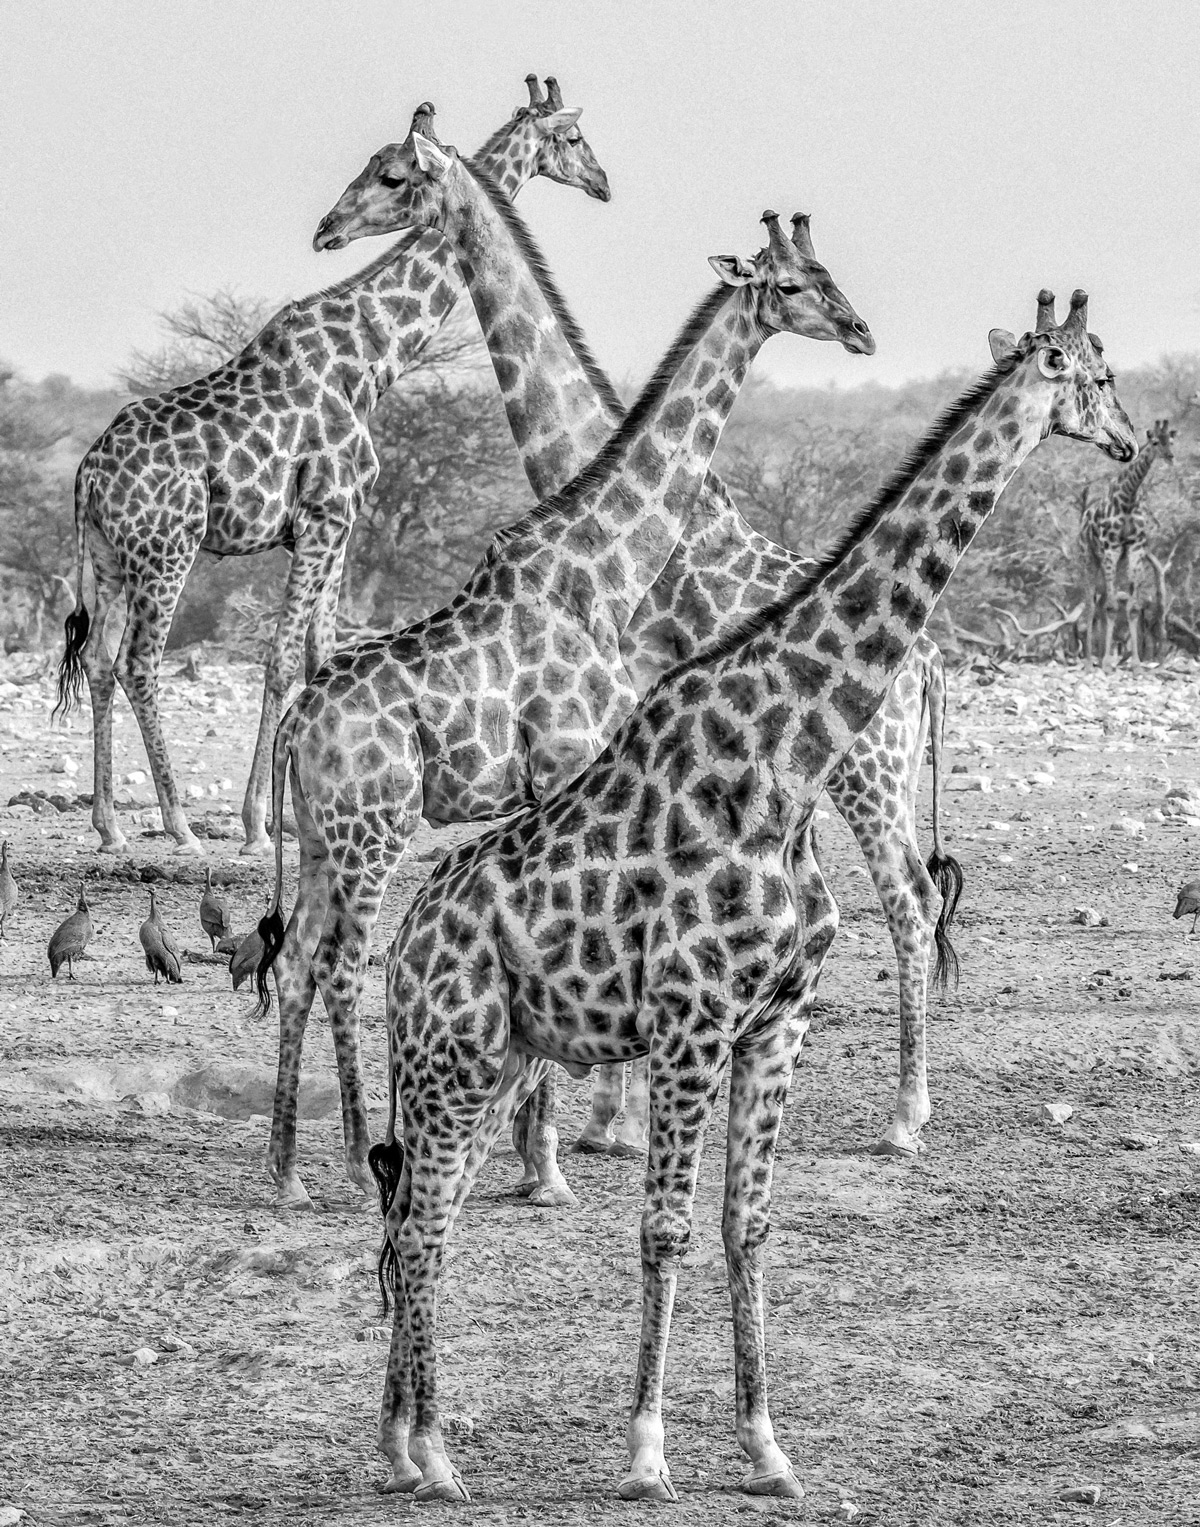 Giraffes gather near a waterhole in Etosha National Park, Namibia © Cindee Beechwood